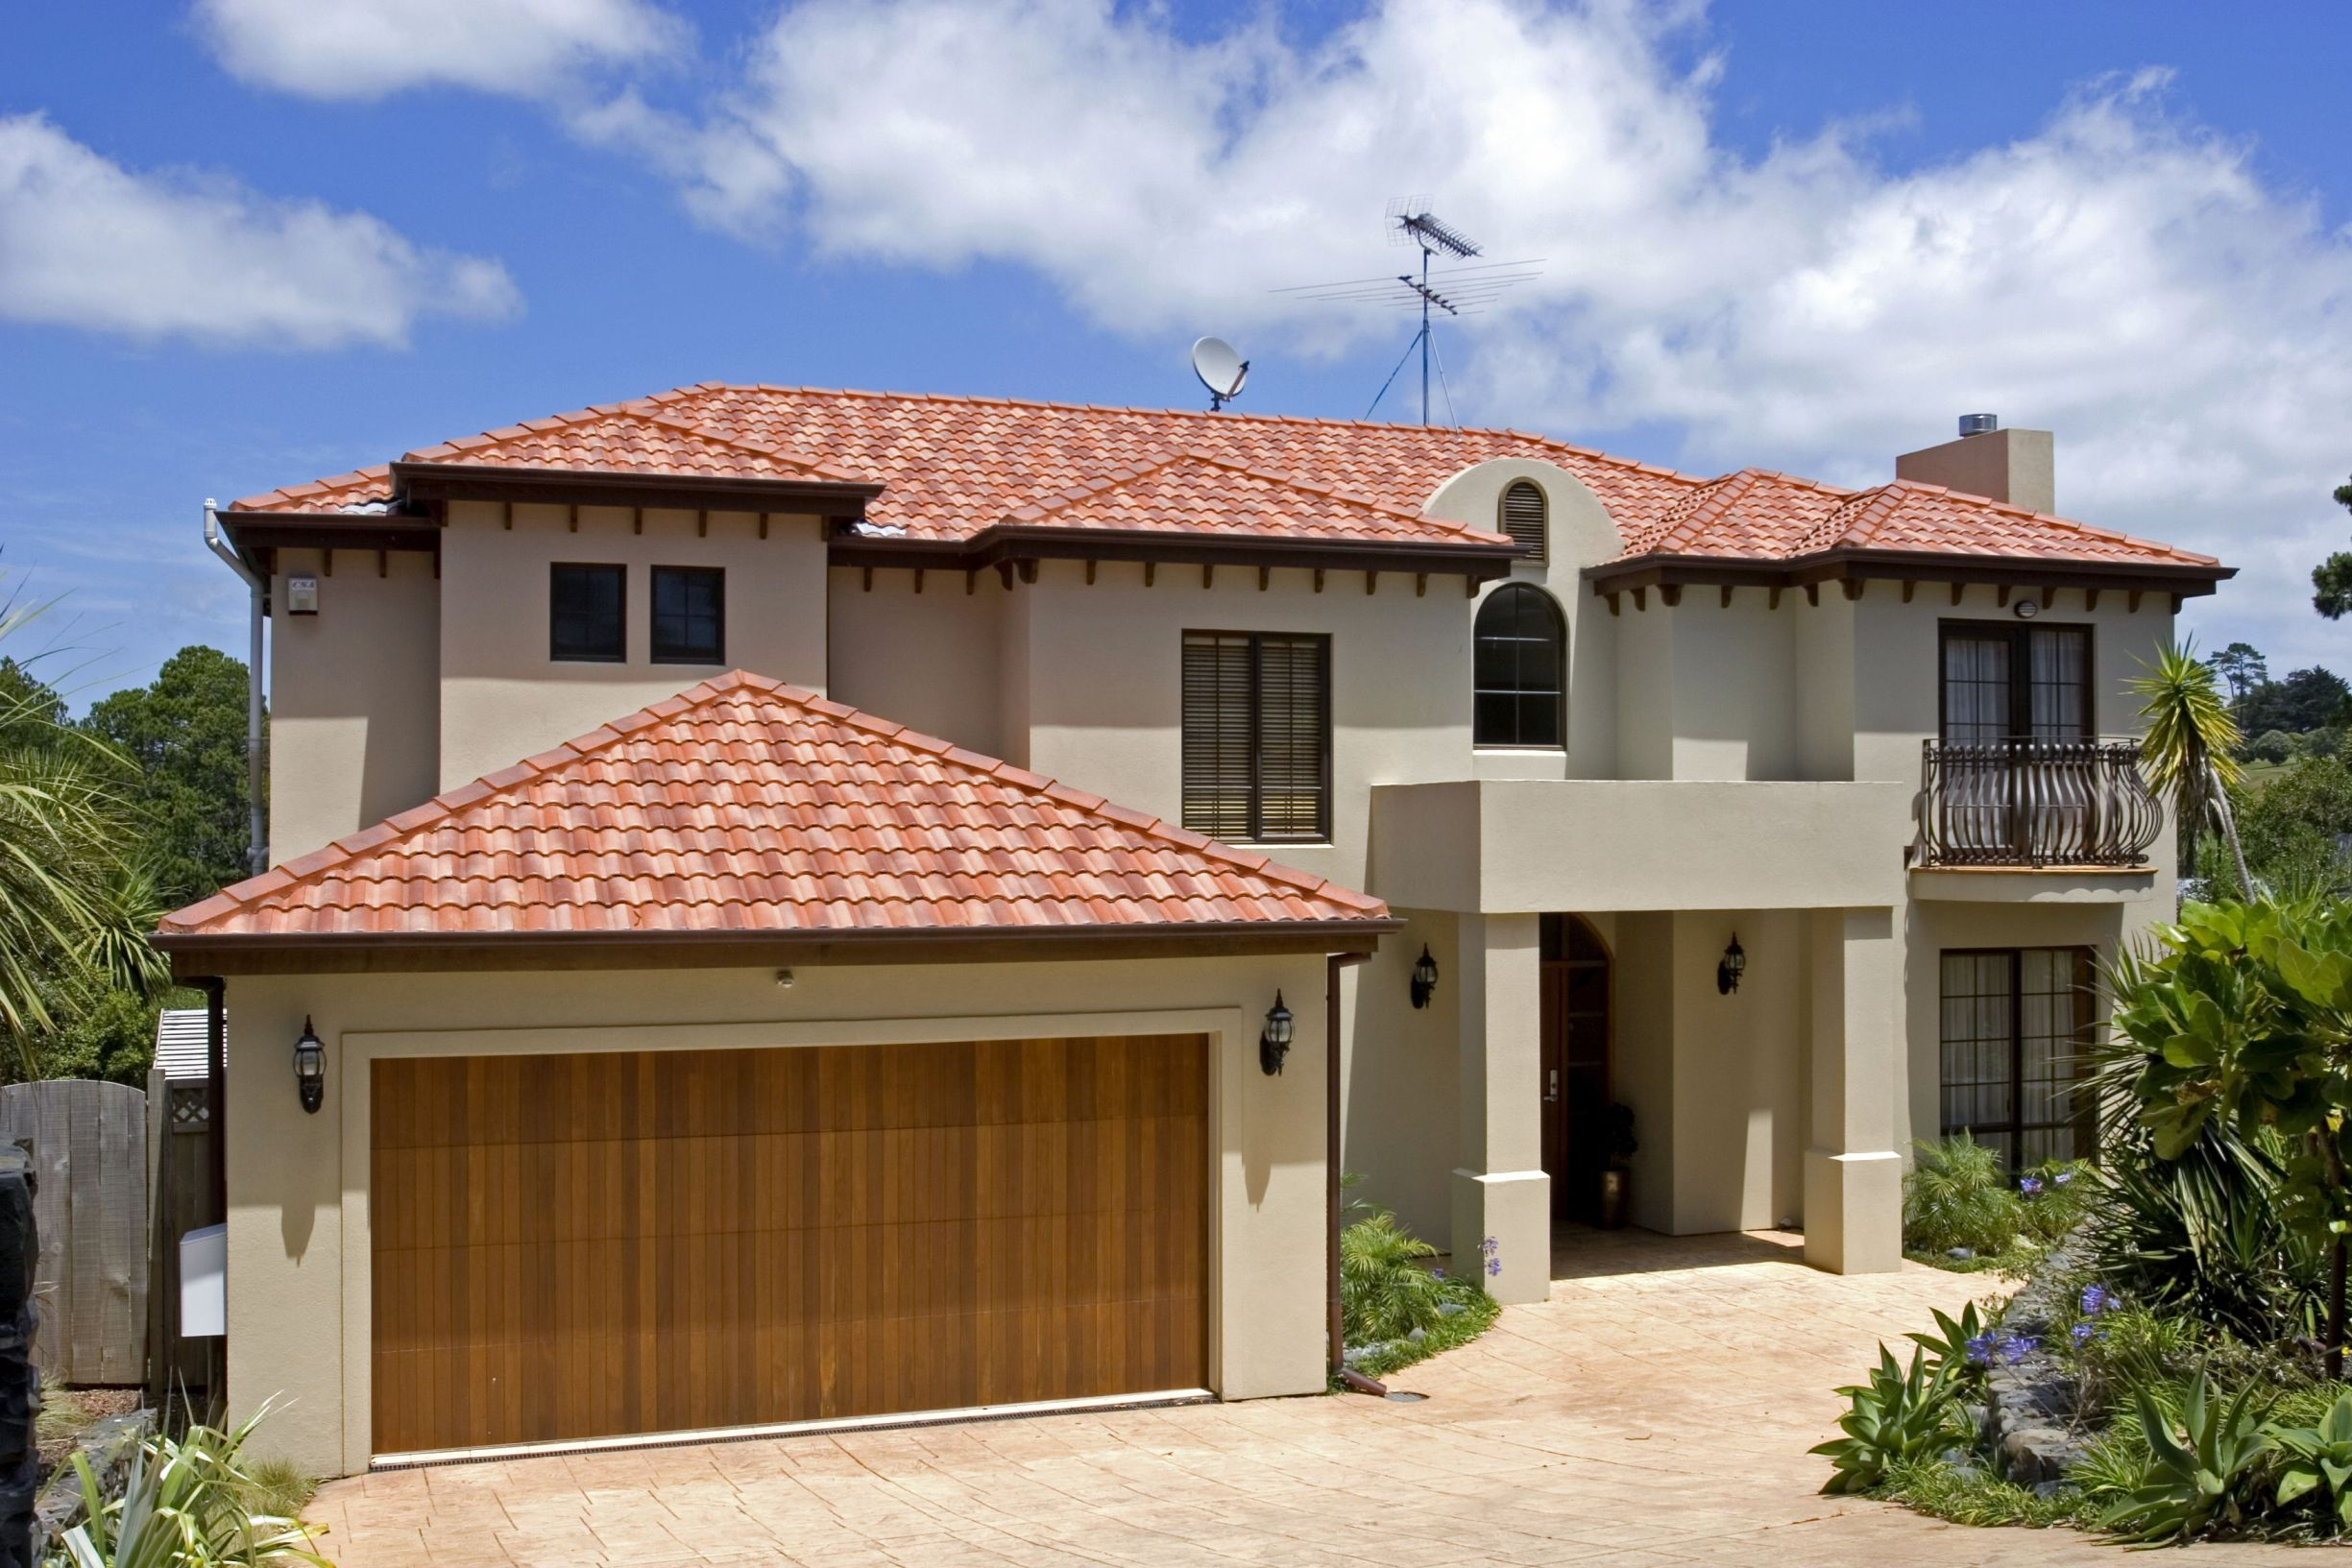 Signs That Your Home's Garage Door Could Use Some Repair